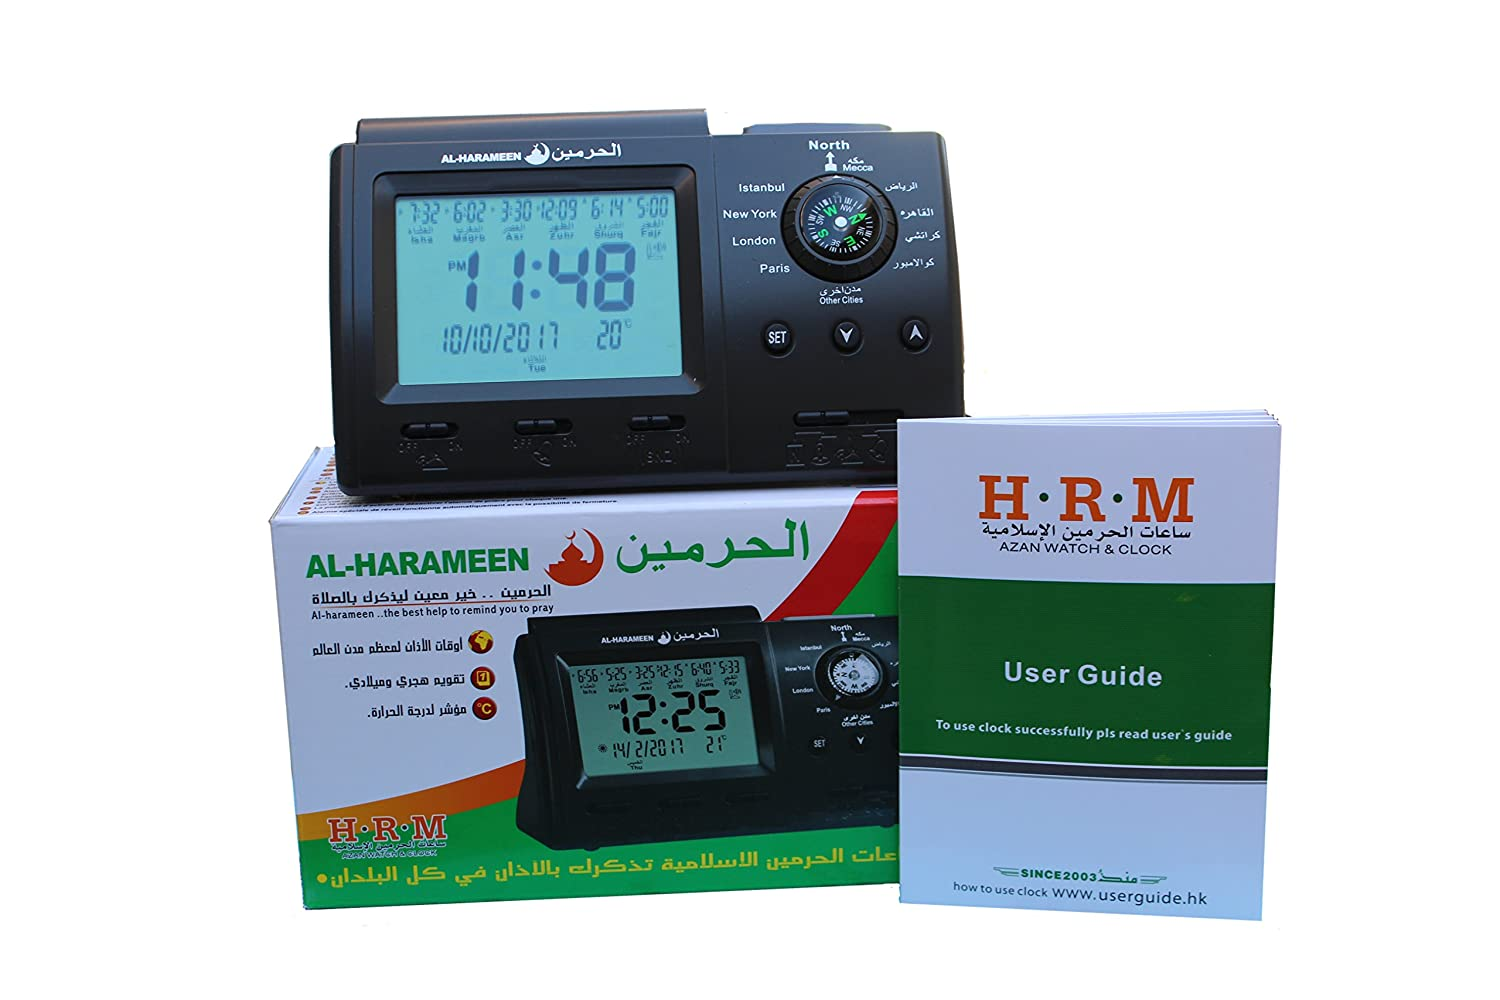 Harameen 3005 Extra instruction manual for US Cities Table Alarm- Islamic prayer five times Muslim Azan Clock with Batteries ZOON